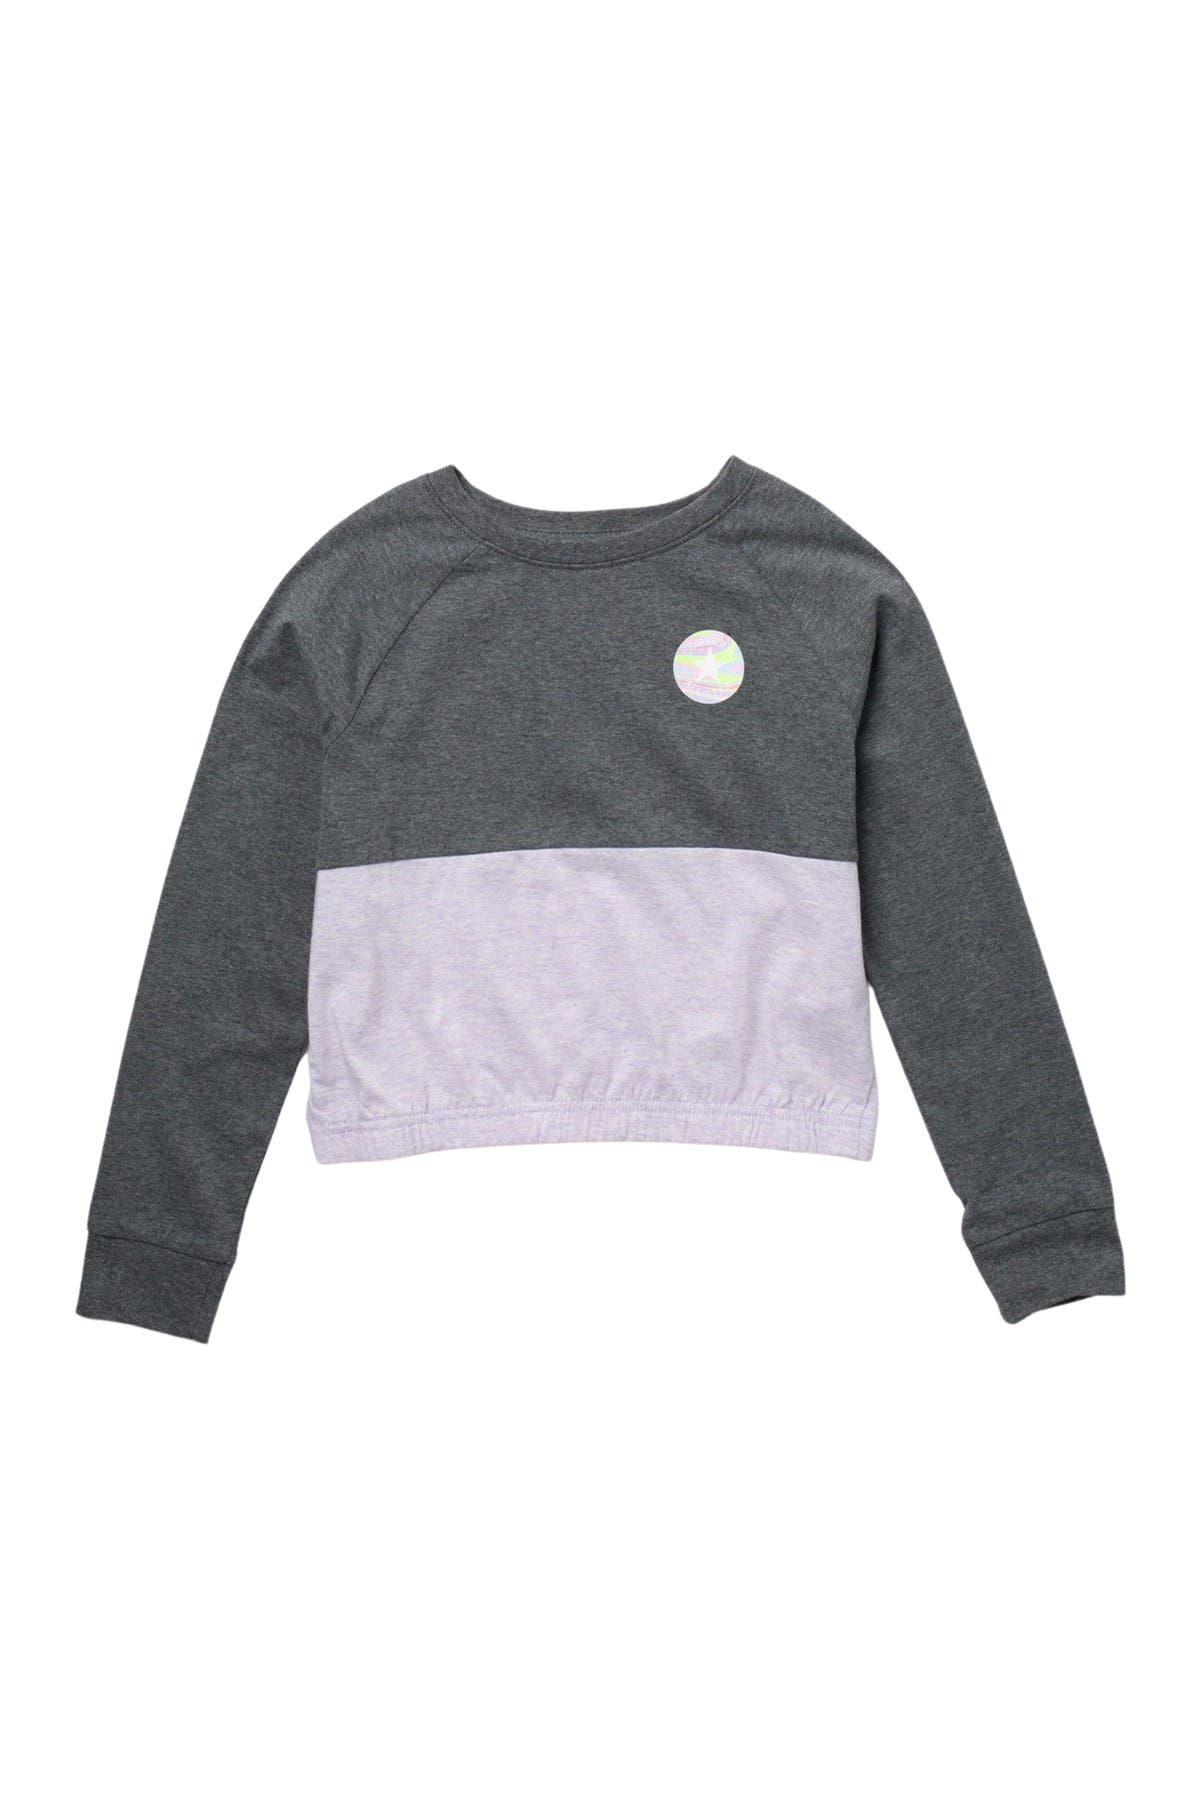 Image of Converse Colorblocked Long Sleeve Top